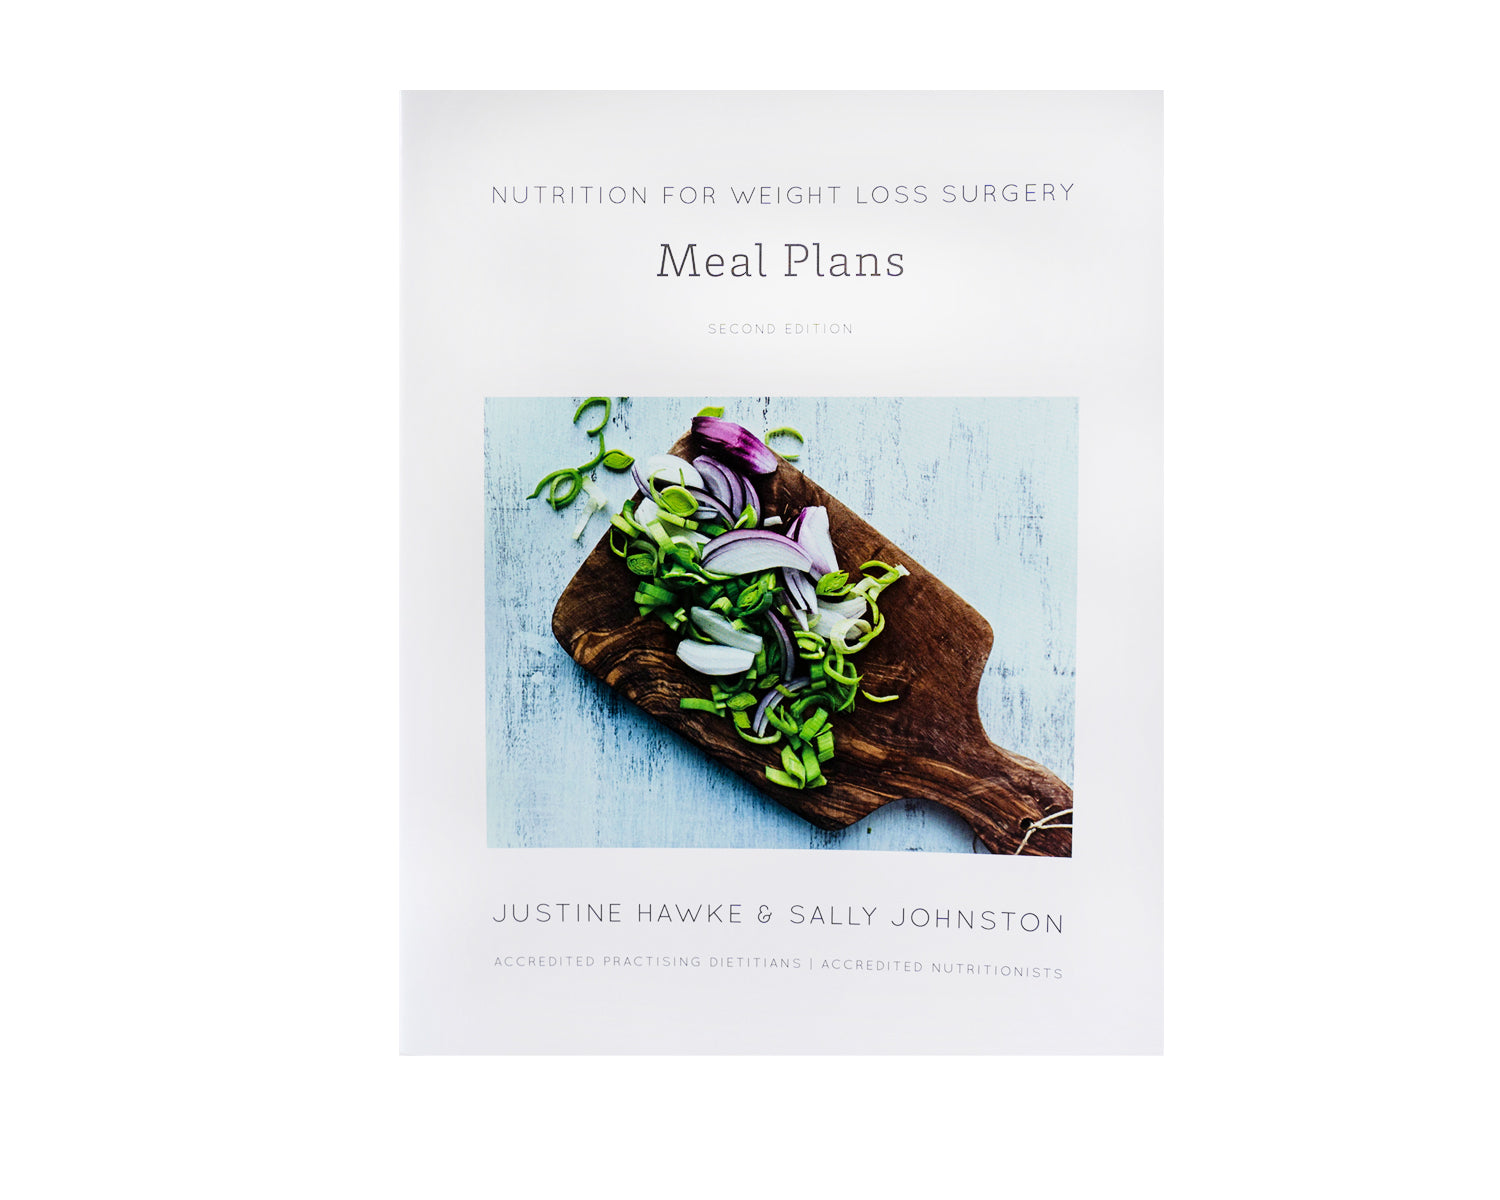 Weight Loss Surgery Meal Plans